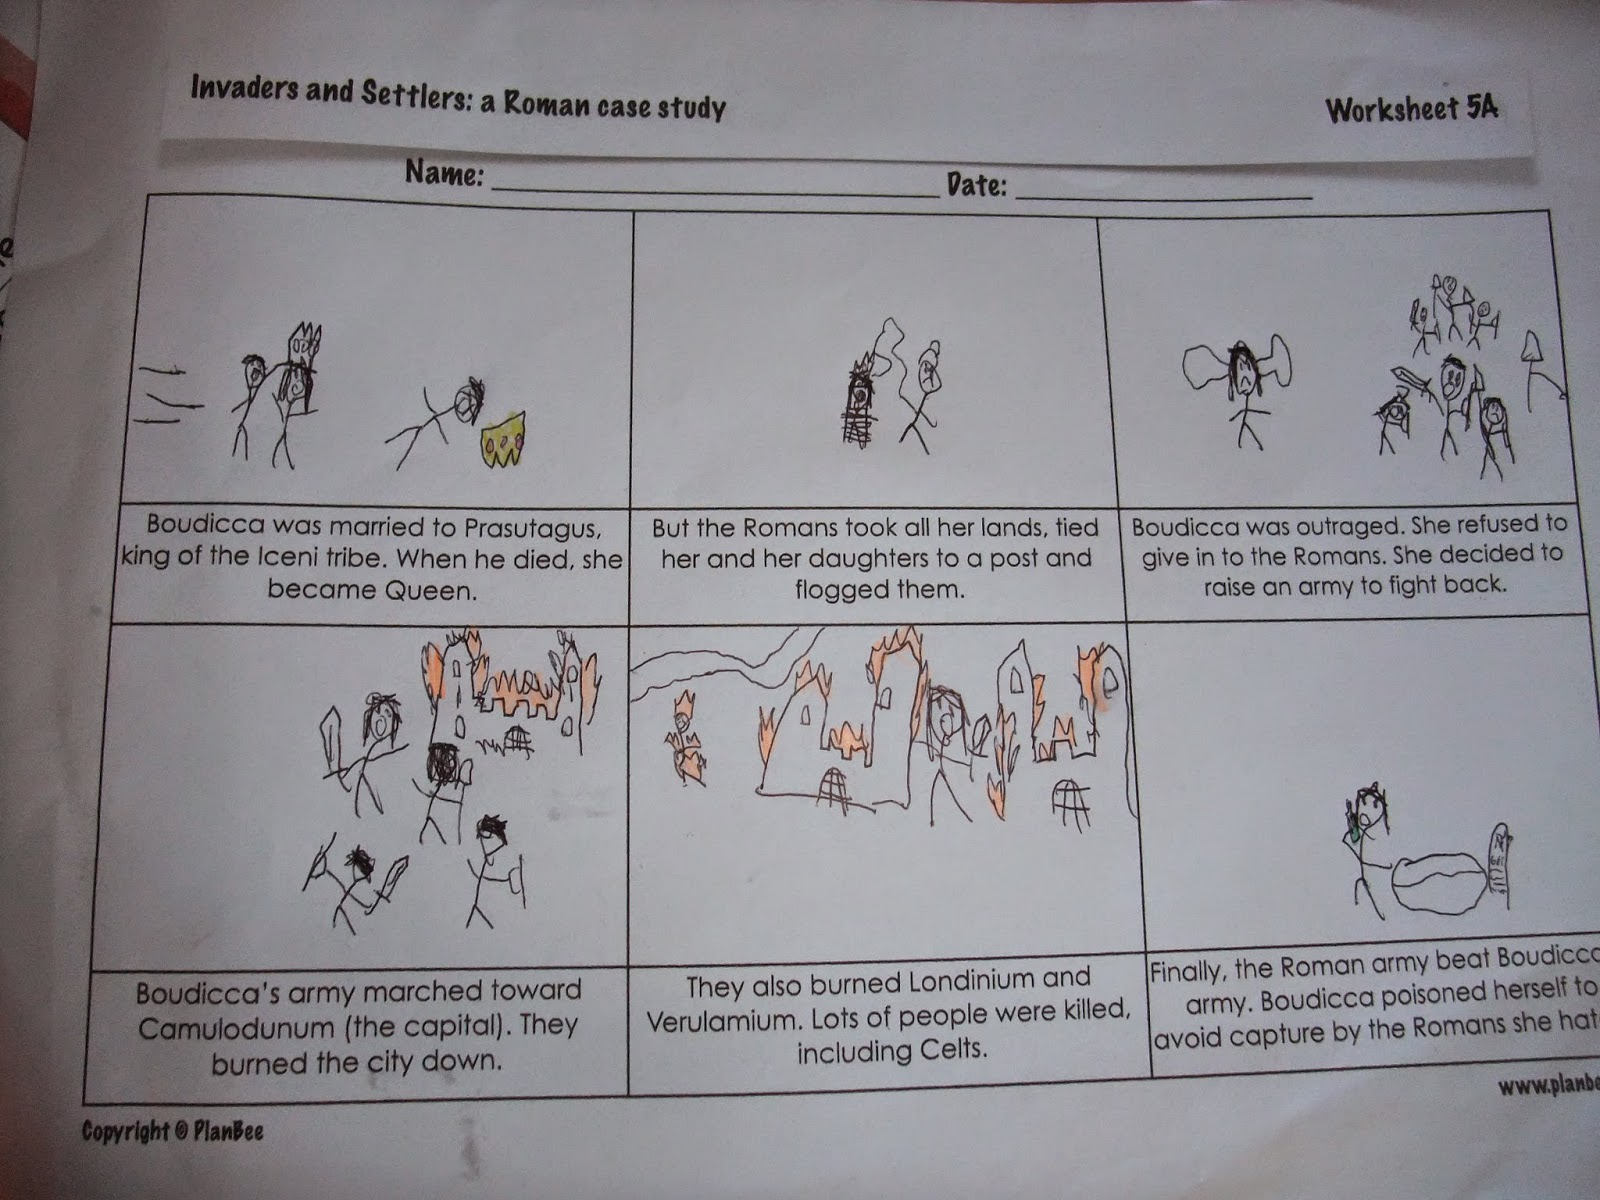 worksheet Boudicca Worksheet the accidental home educator in between lessons we have found time to play a game just bought called city of zombies which has had excellent reviews and won numerous awards